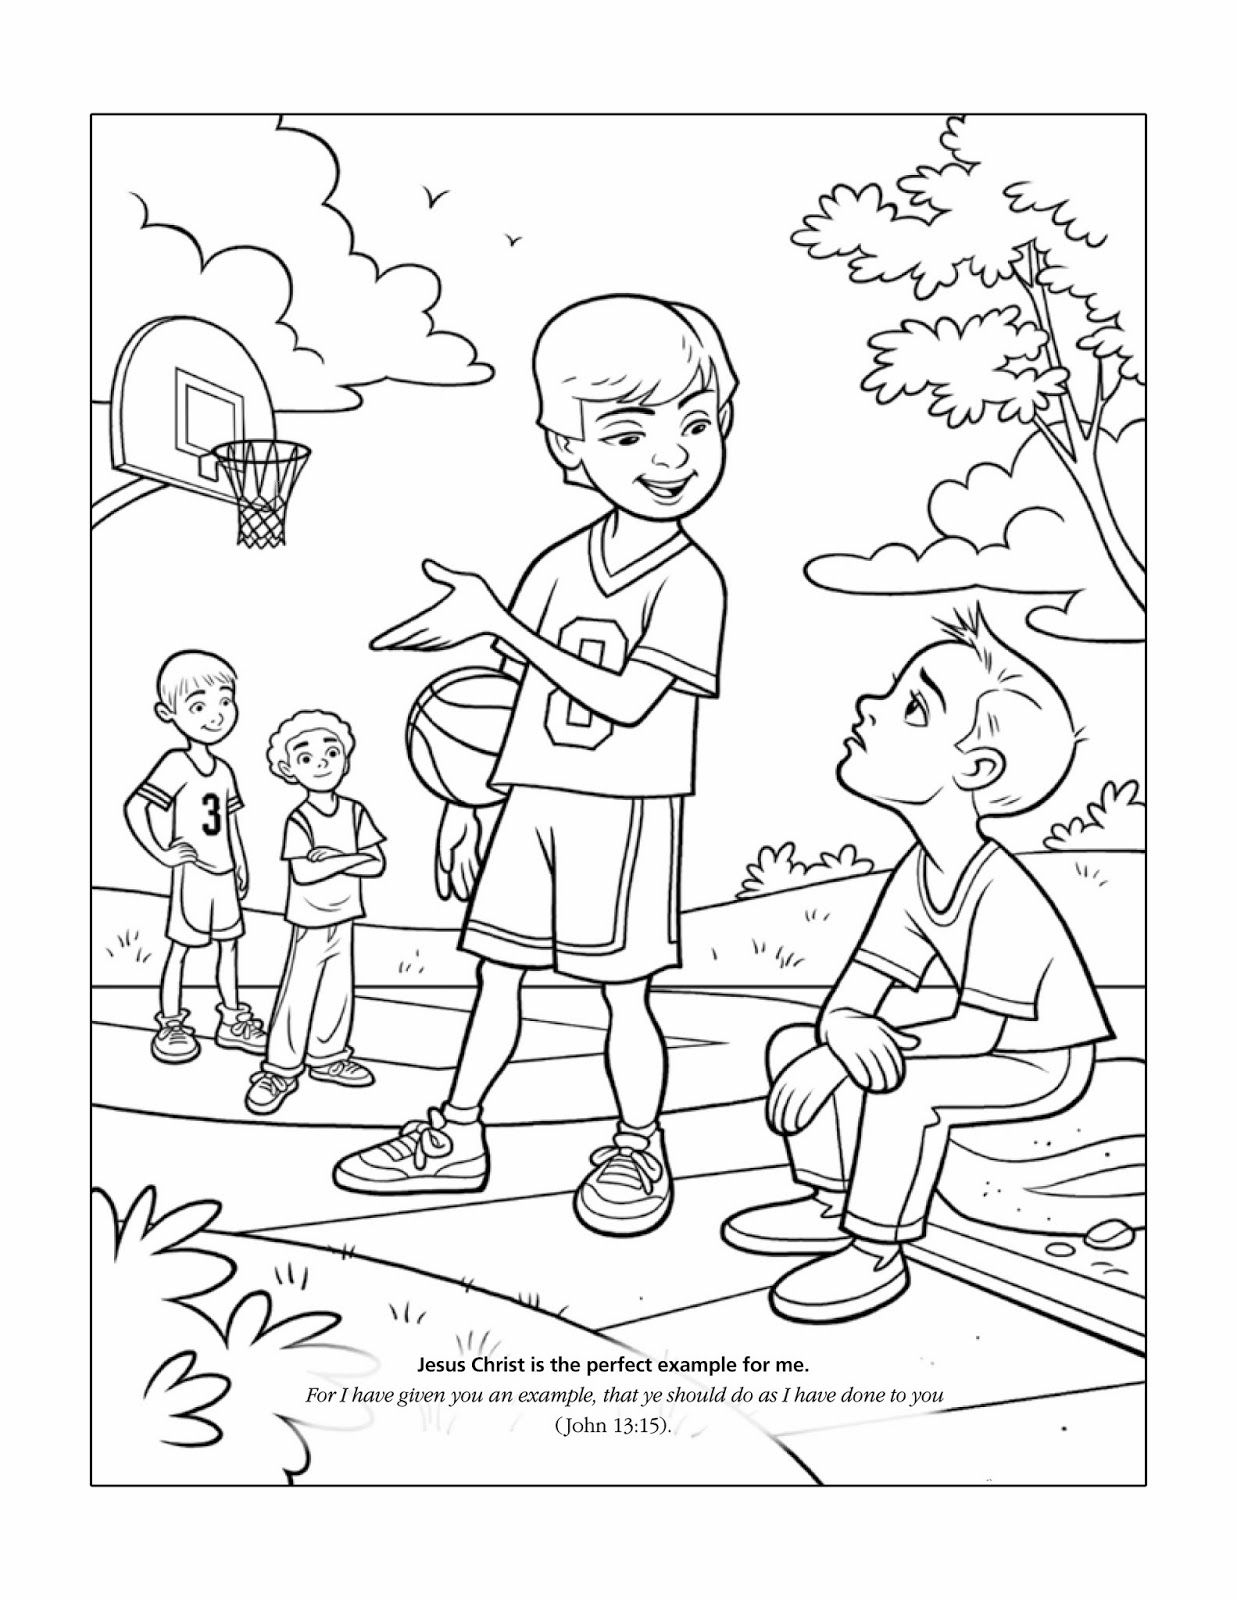 JOHN 1315 LDS Teaching Visuals Coloring Pages Lds